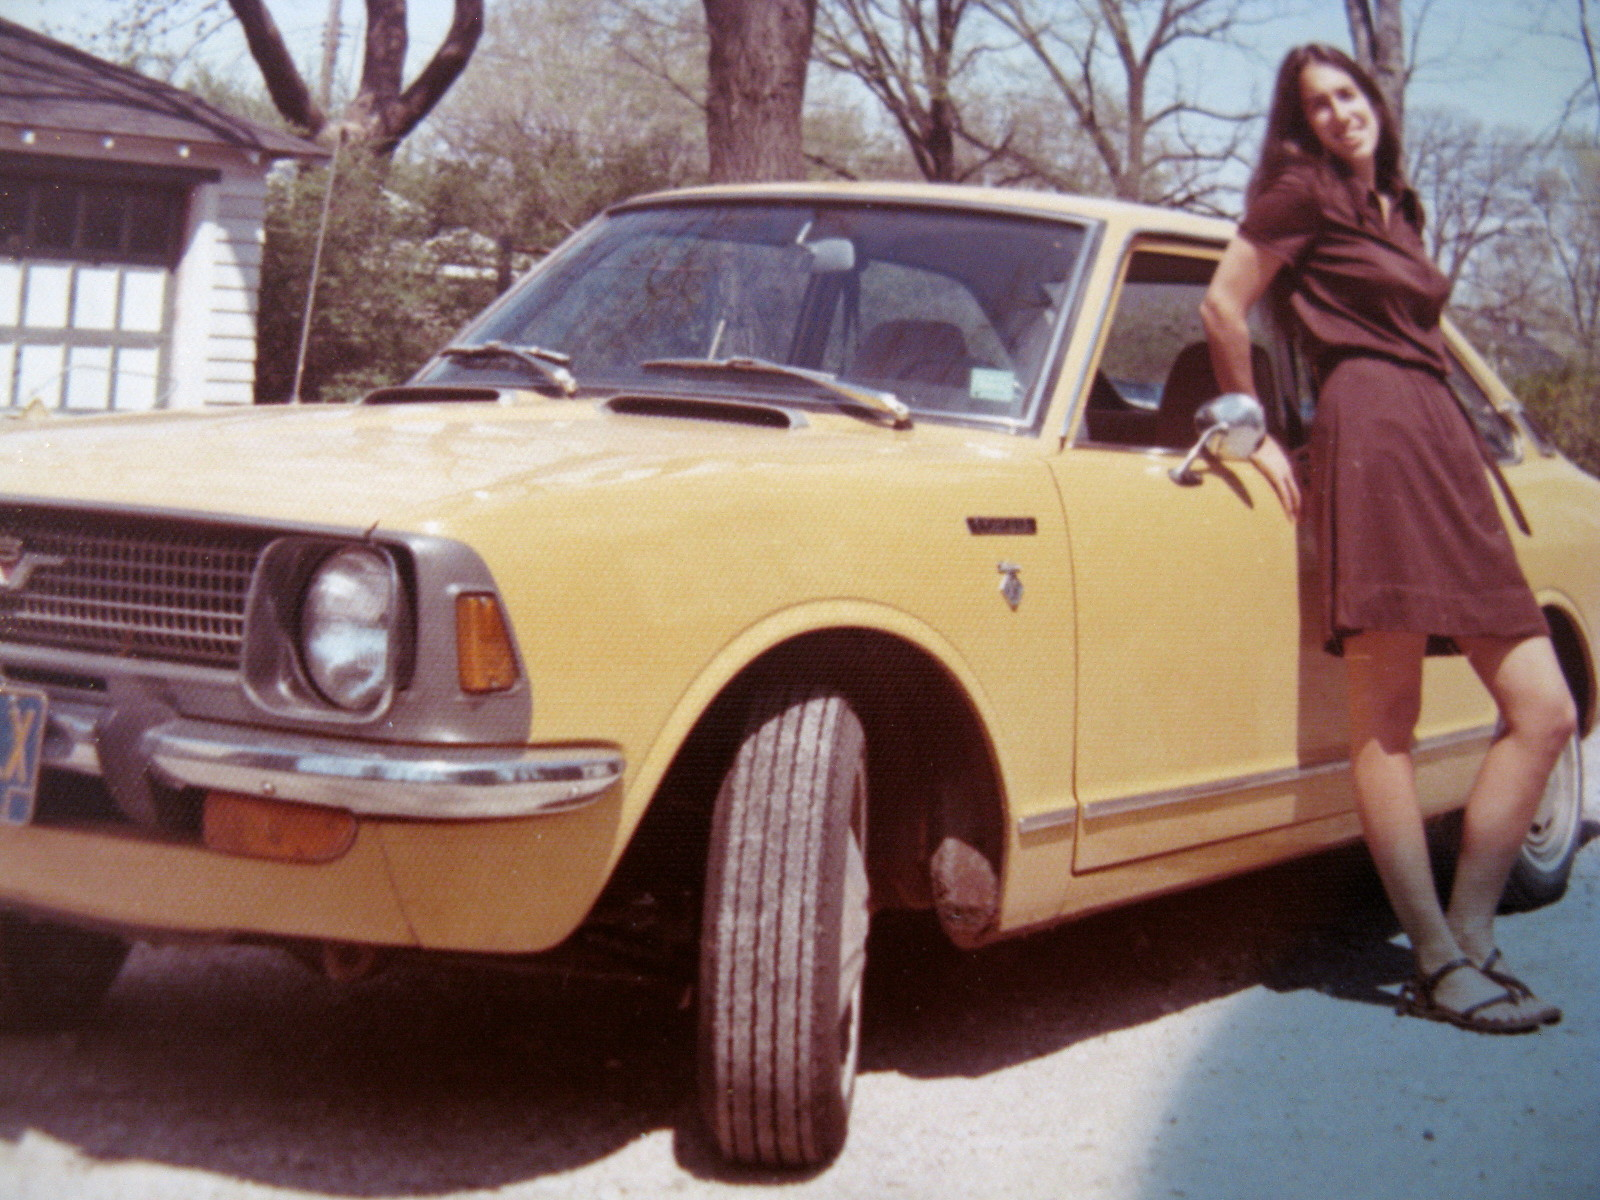 Suzan Deaner and her mother's Toyota Corolla, June 73.